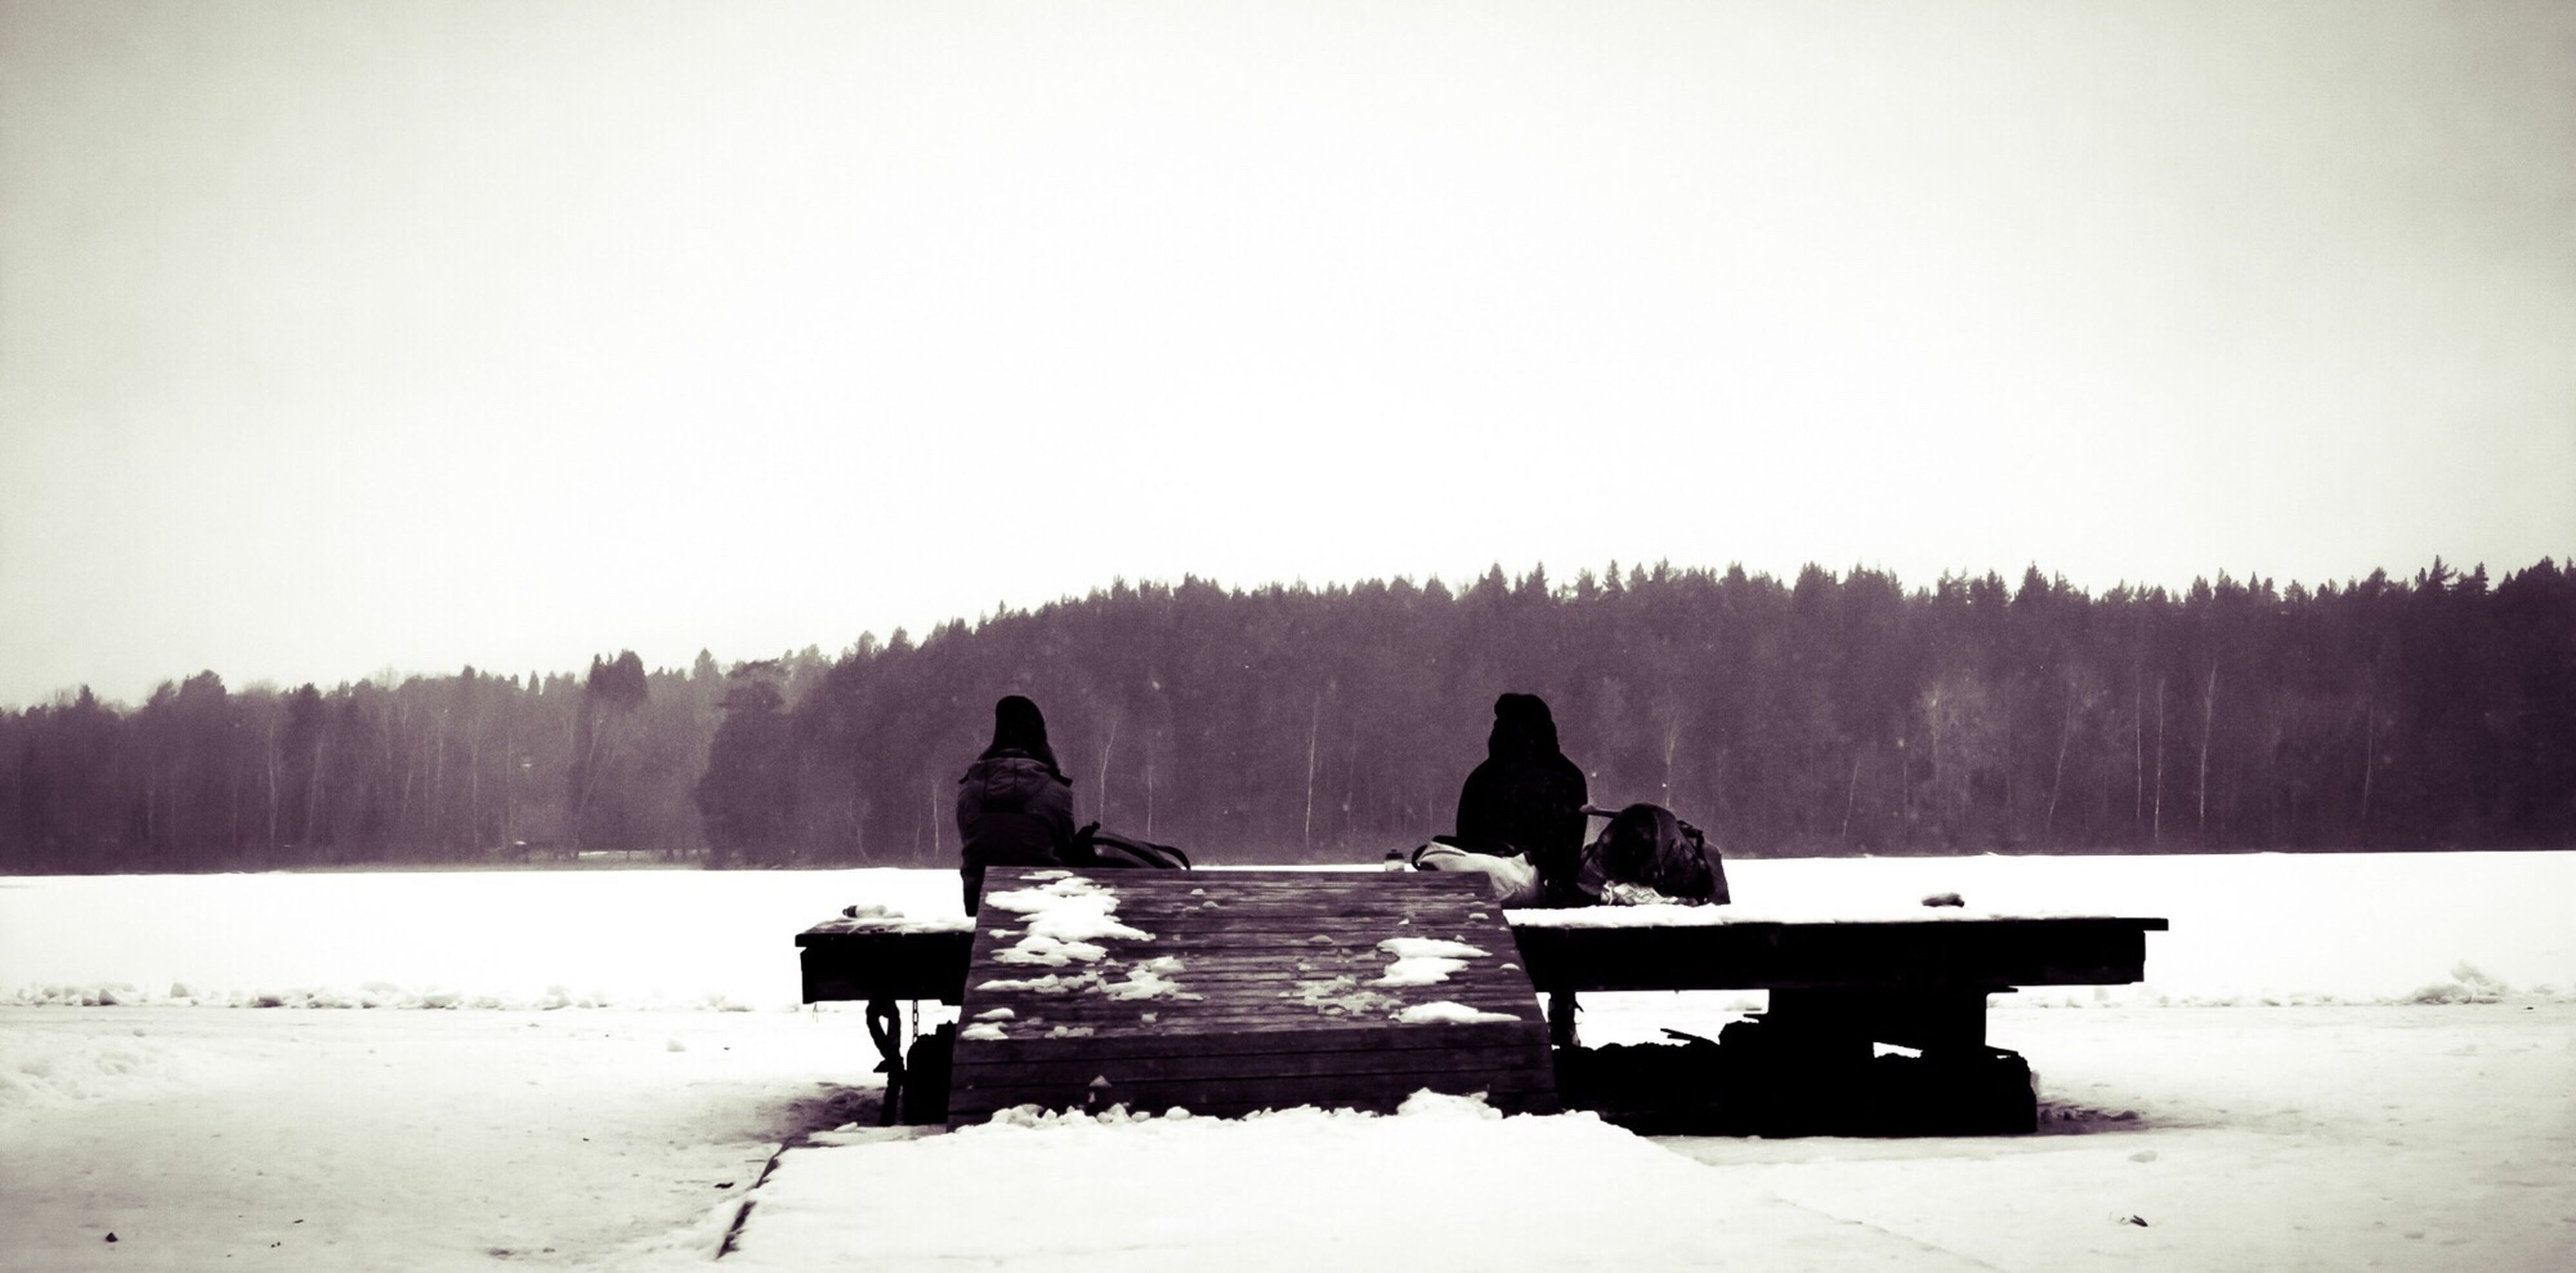 snow, winter, cold temperature, clear sky, tranquil scene, tranquility, copy space, bench, sitting, lake, silhouette, nature, season, scenics, beauty in nature, relaxation, water, weather, men